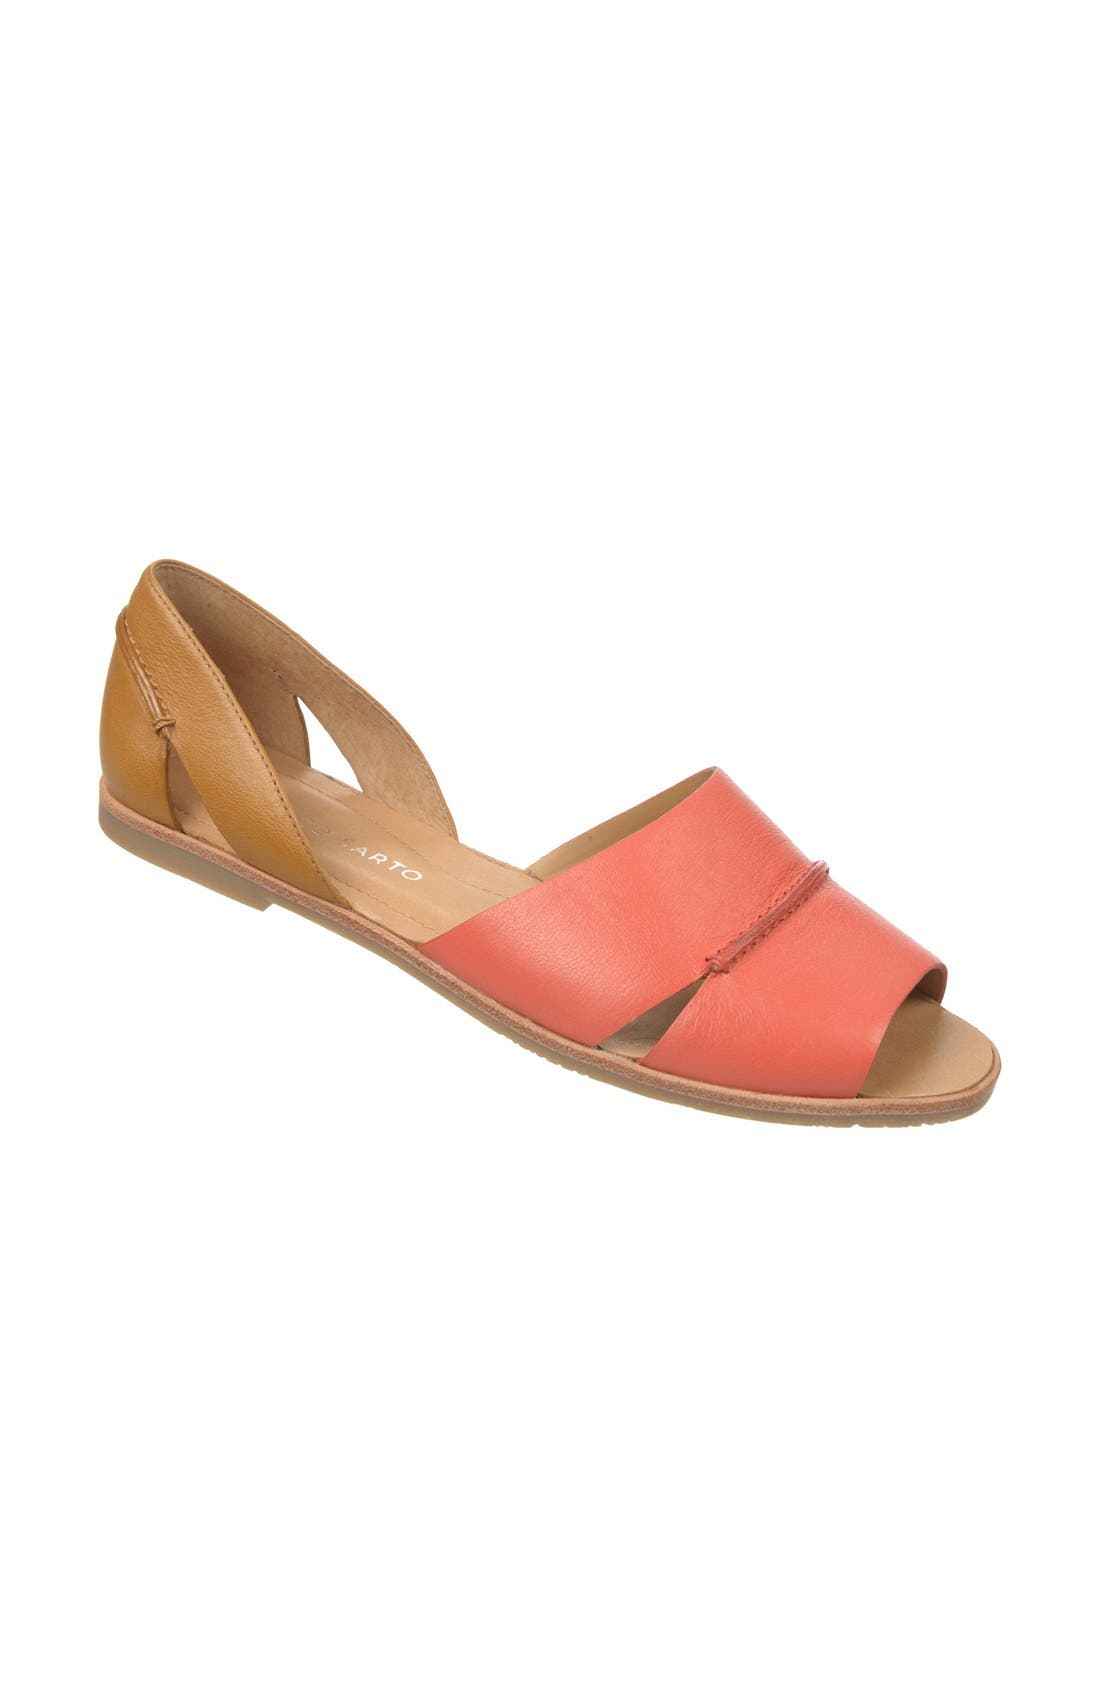 Alternate Image 1 Selected - Franco Sarto 'Vivace' Leather d'Orsay Flat (Women)